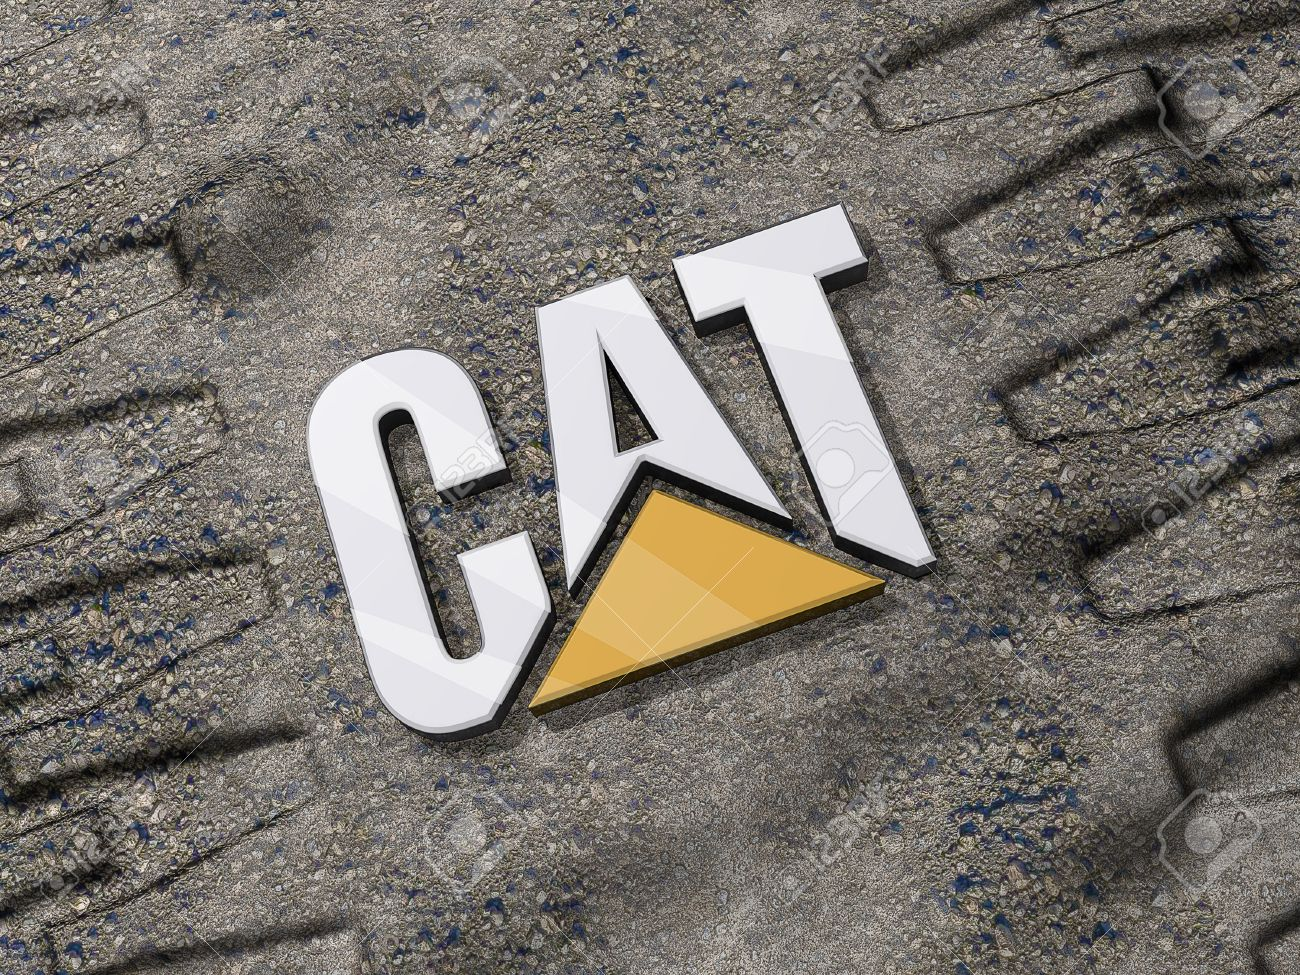 Stock photo vancouver british columbia canada july 15 2012 caterpillar logo on the ground between tread marks